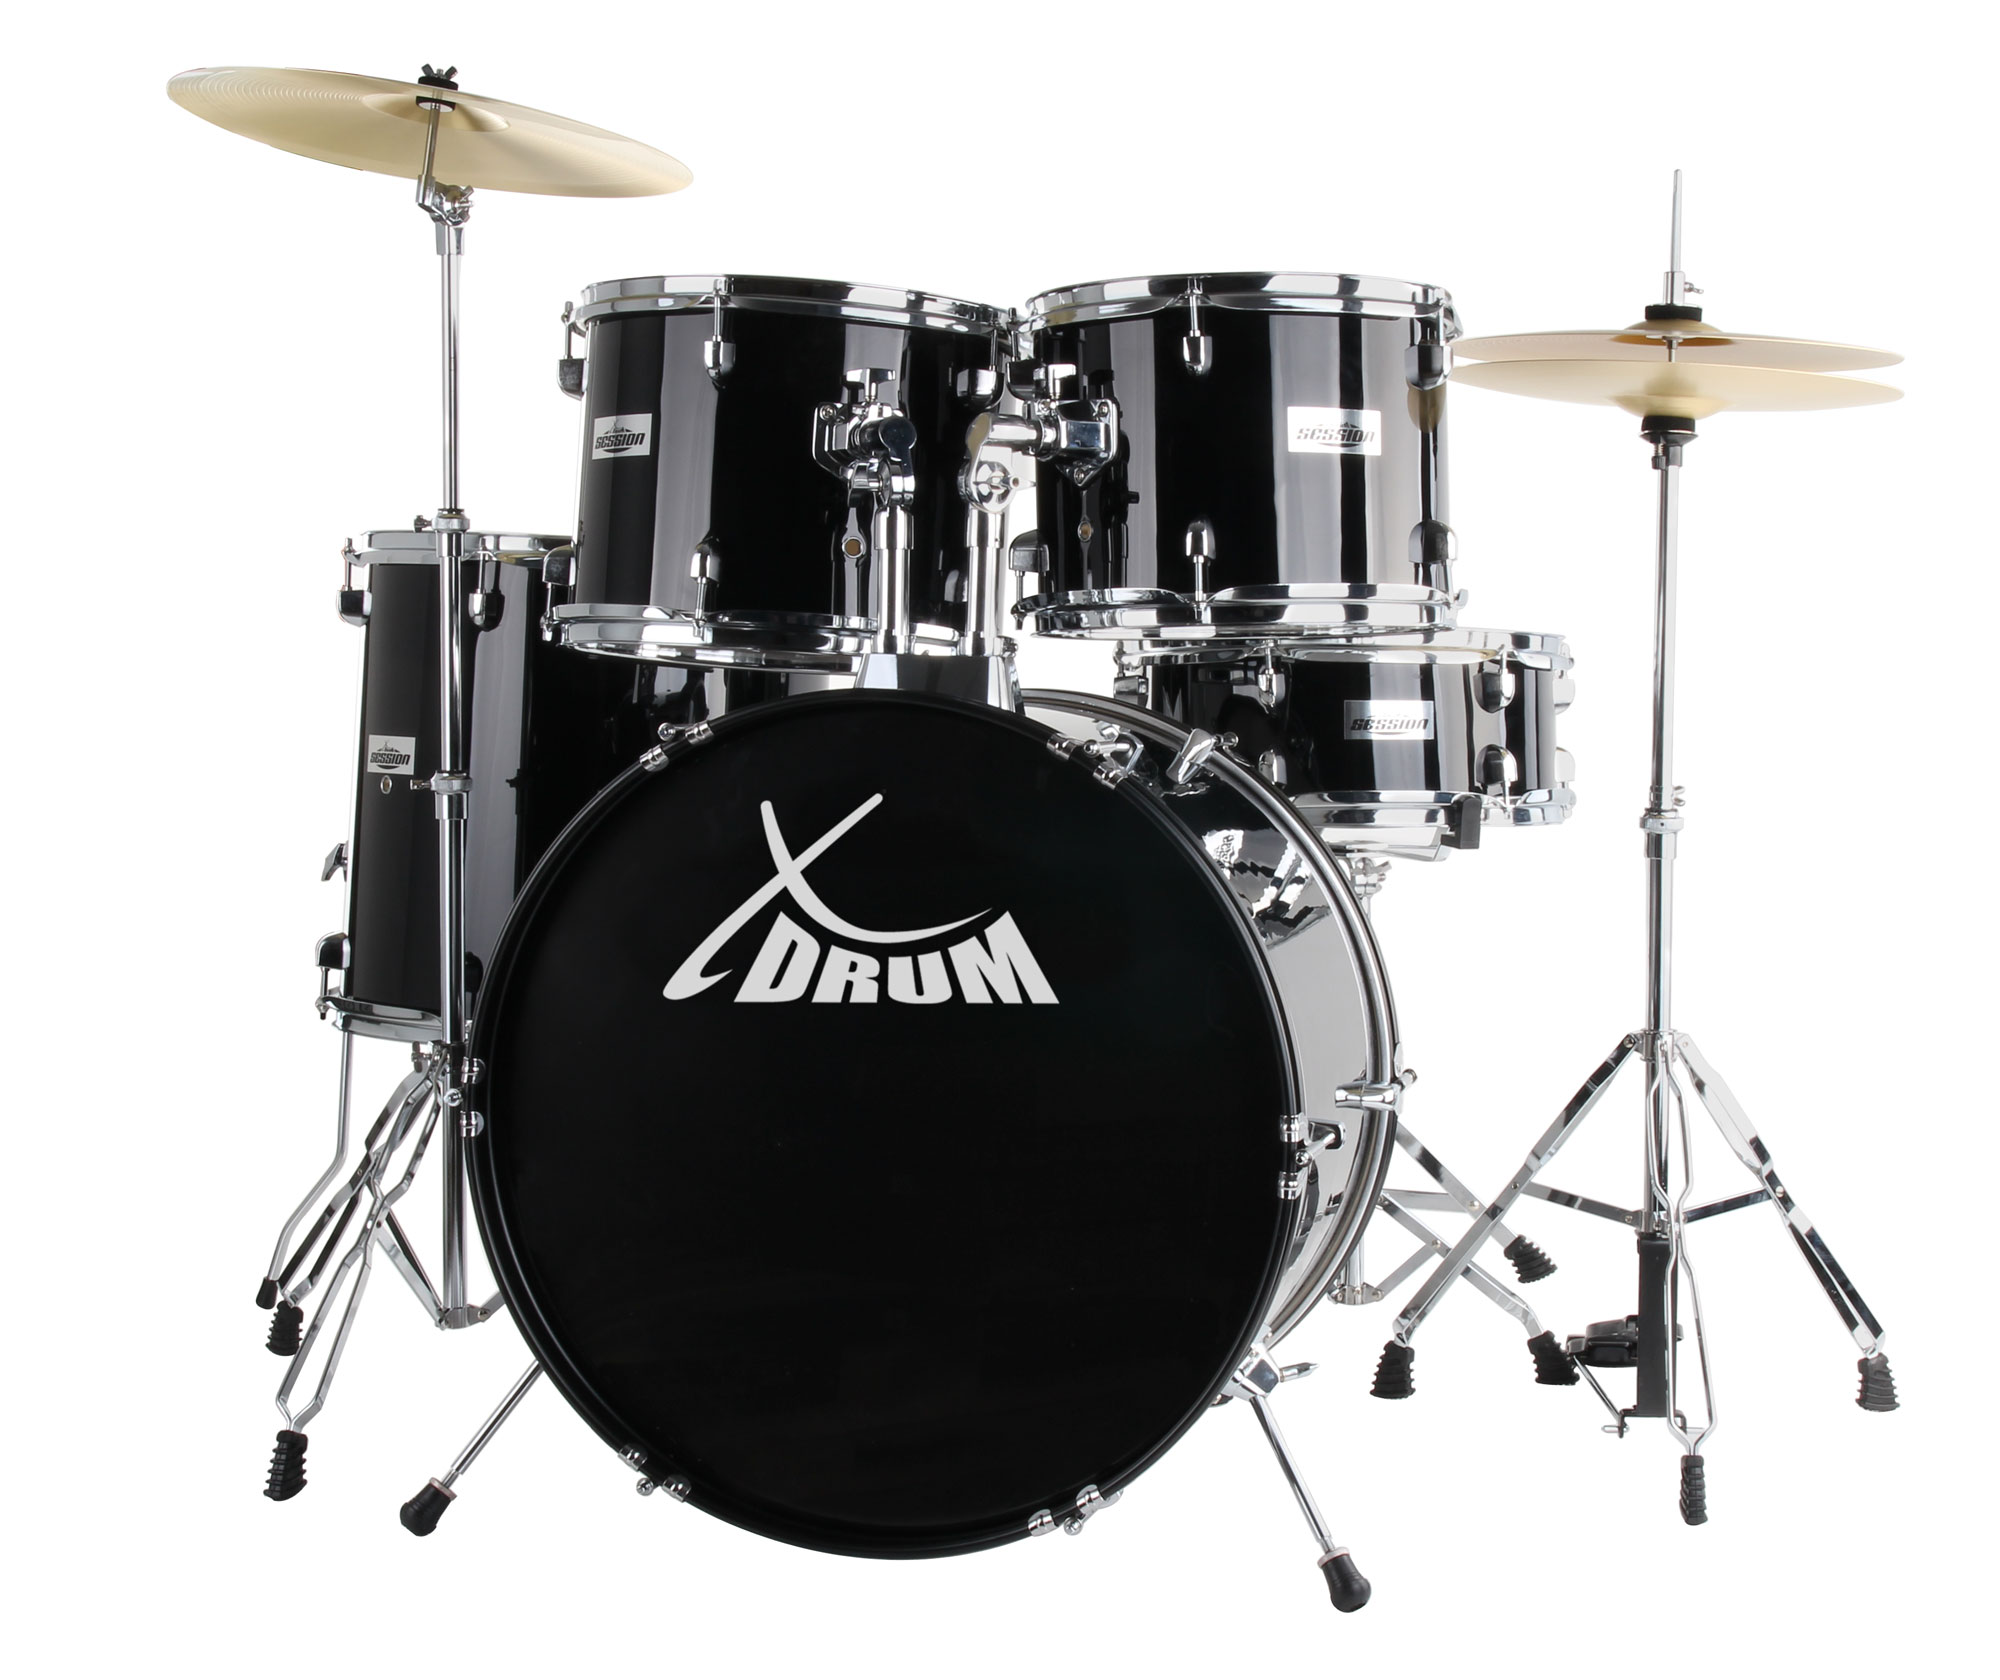 XDrum Semi 22' Standard Schlagzeug Set Midnight Black inkl. Schule DVD